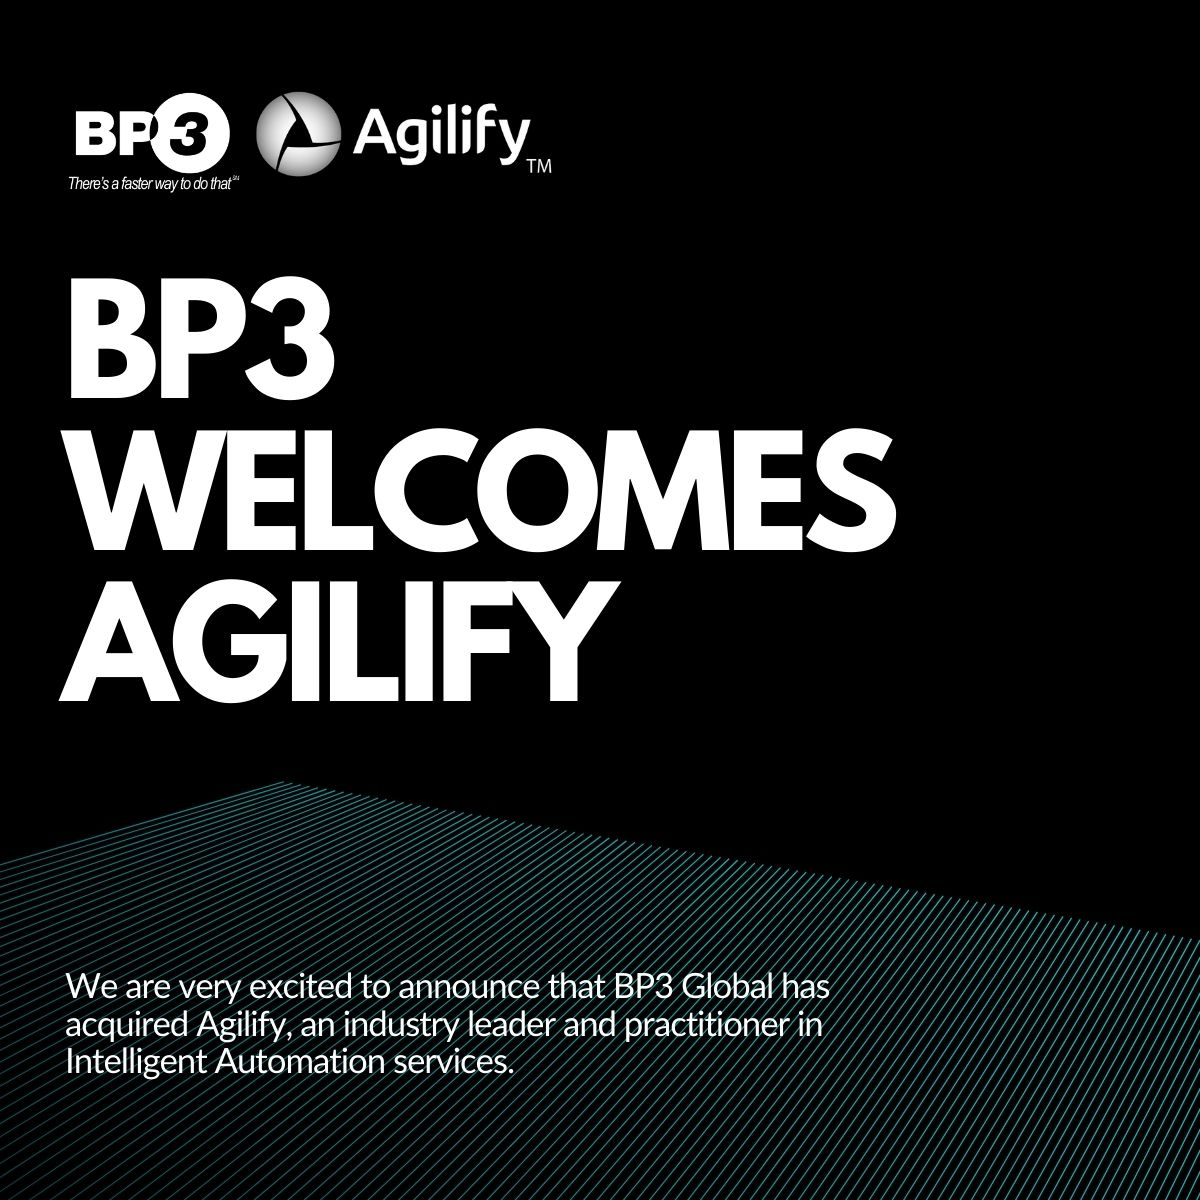 Thoughts on the acquisition of the healthcare and Robotic Process Automation (RPA) focused Agilify from BP3 CEO, Scott Francis.